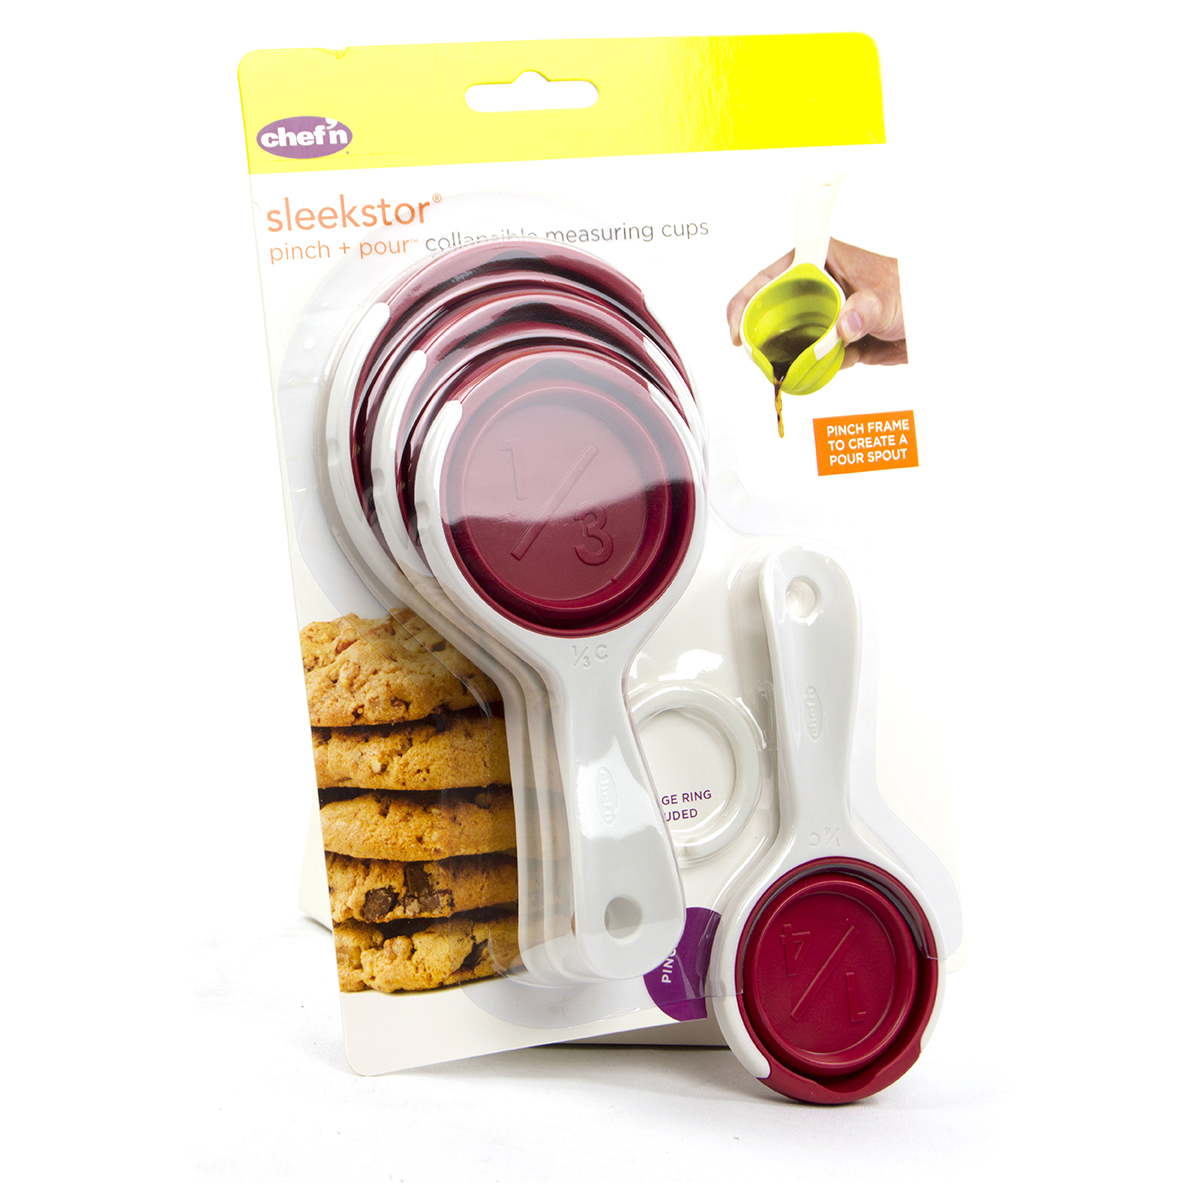 Chef'n SleekStor Pinch+Pour Collapsible Measuring Cups (Cherry)